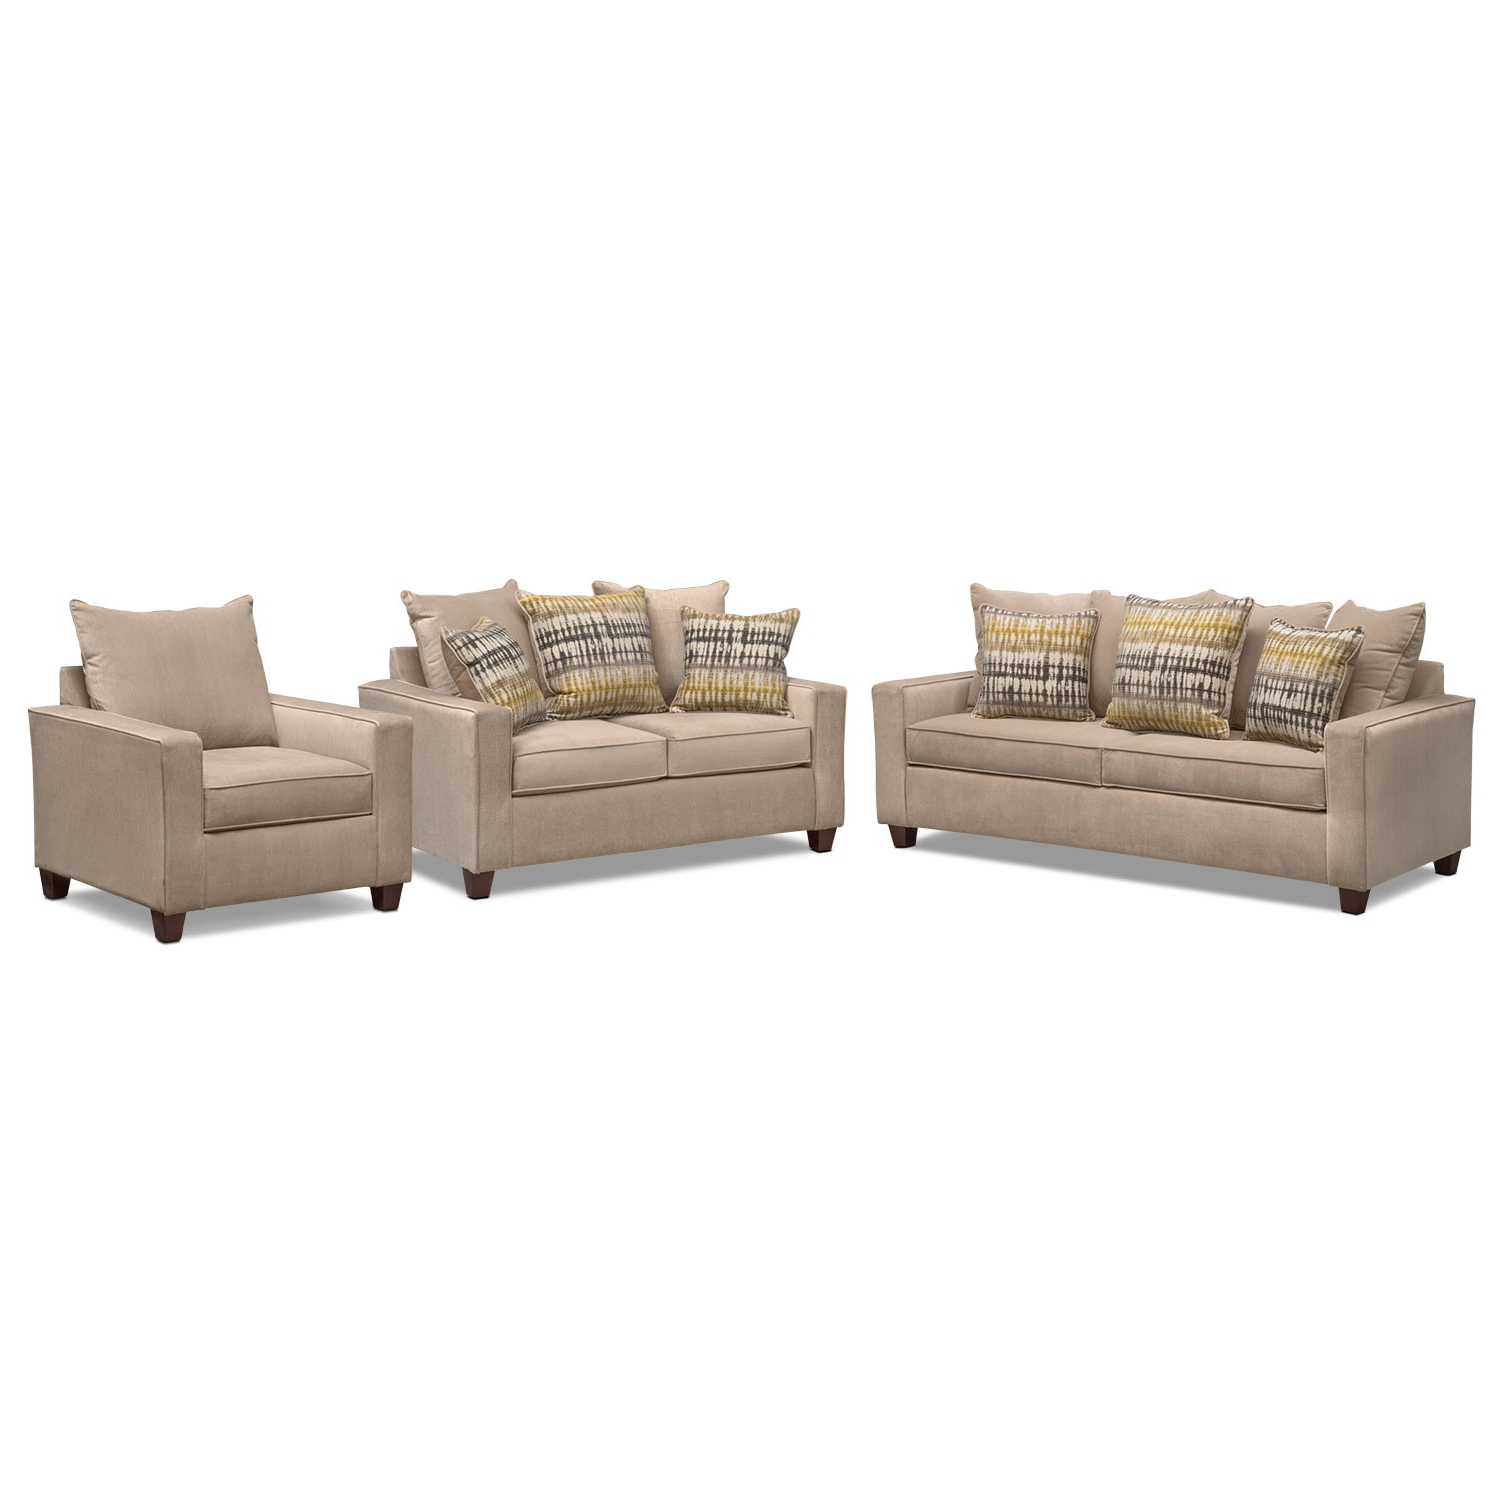 Bryden Queen Innerspring Sleeper Sofa, Loveseat And Chair Set Intended For Famous Sofa Loveseat And Chair Set (Gallery 9 of 20)